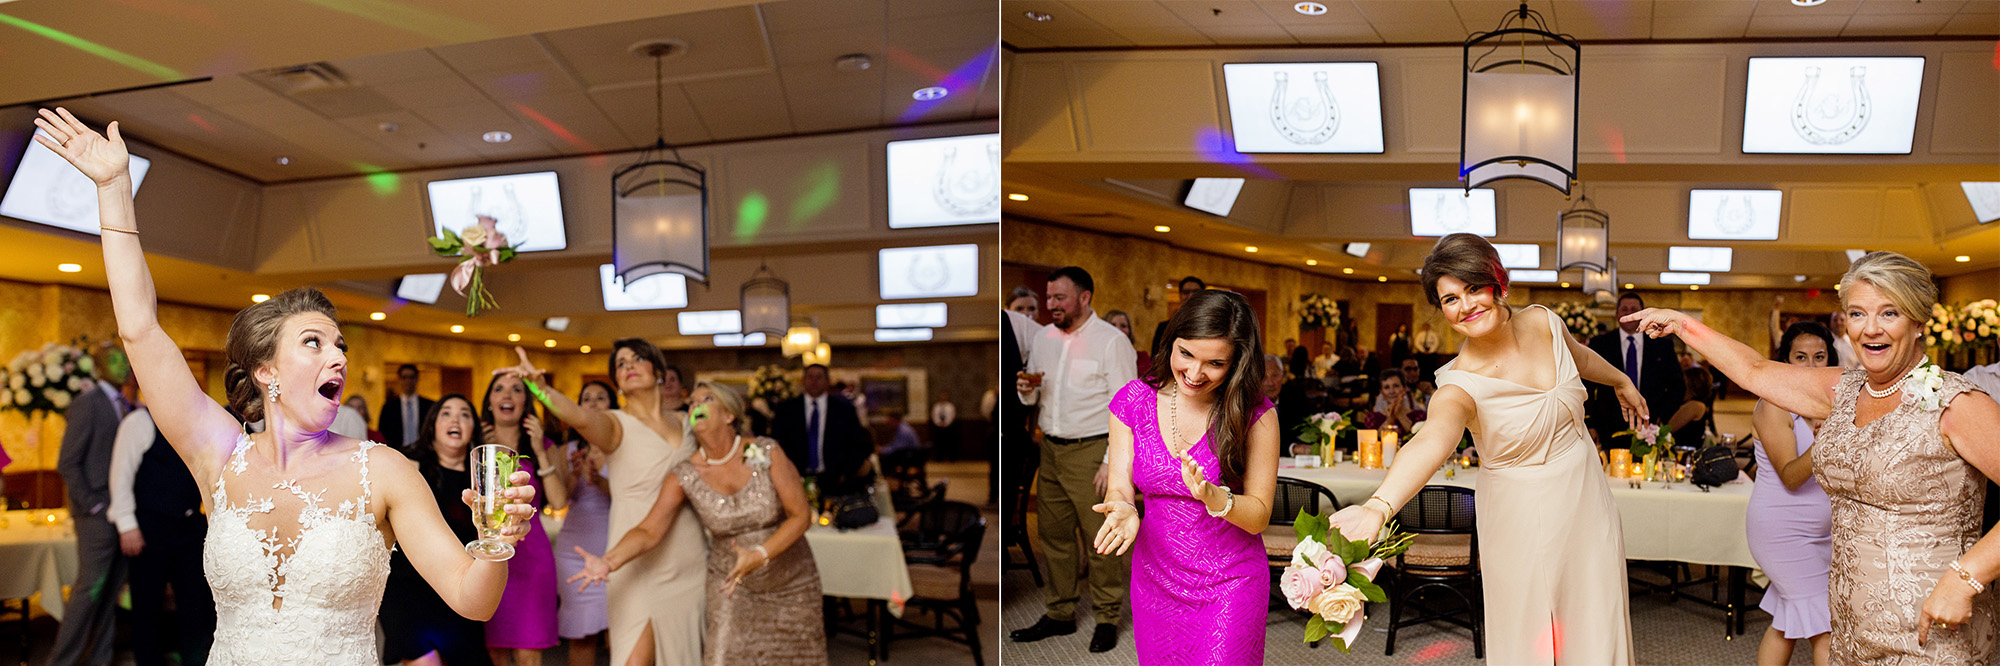 Seriously_Sabrina_Photography_Lexington_Kentucky_Downtown_Keeneland_Clubhouse_Wedding_Spitzer_141.jpg